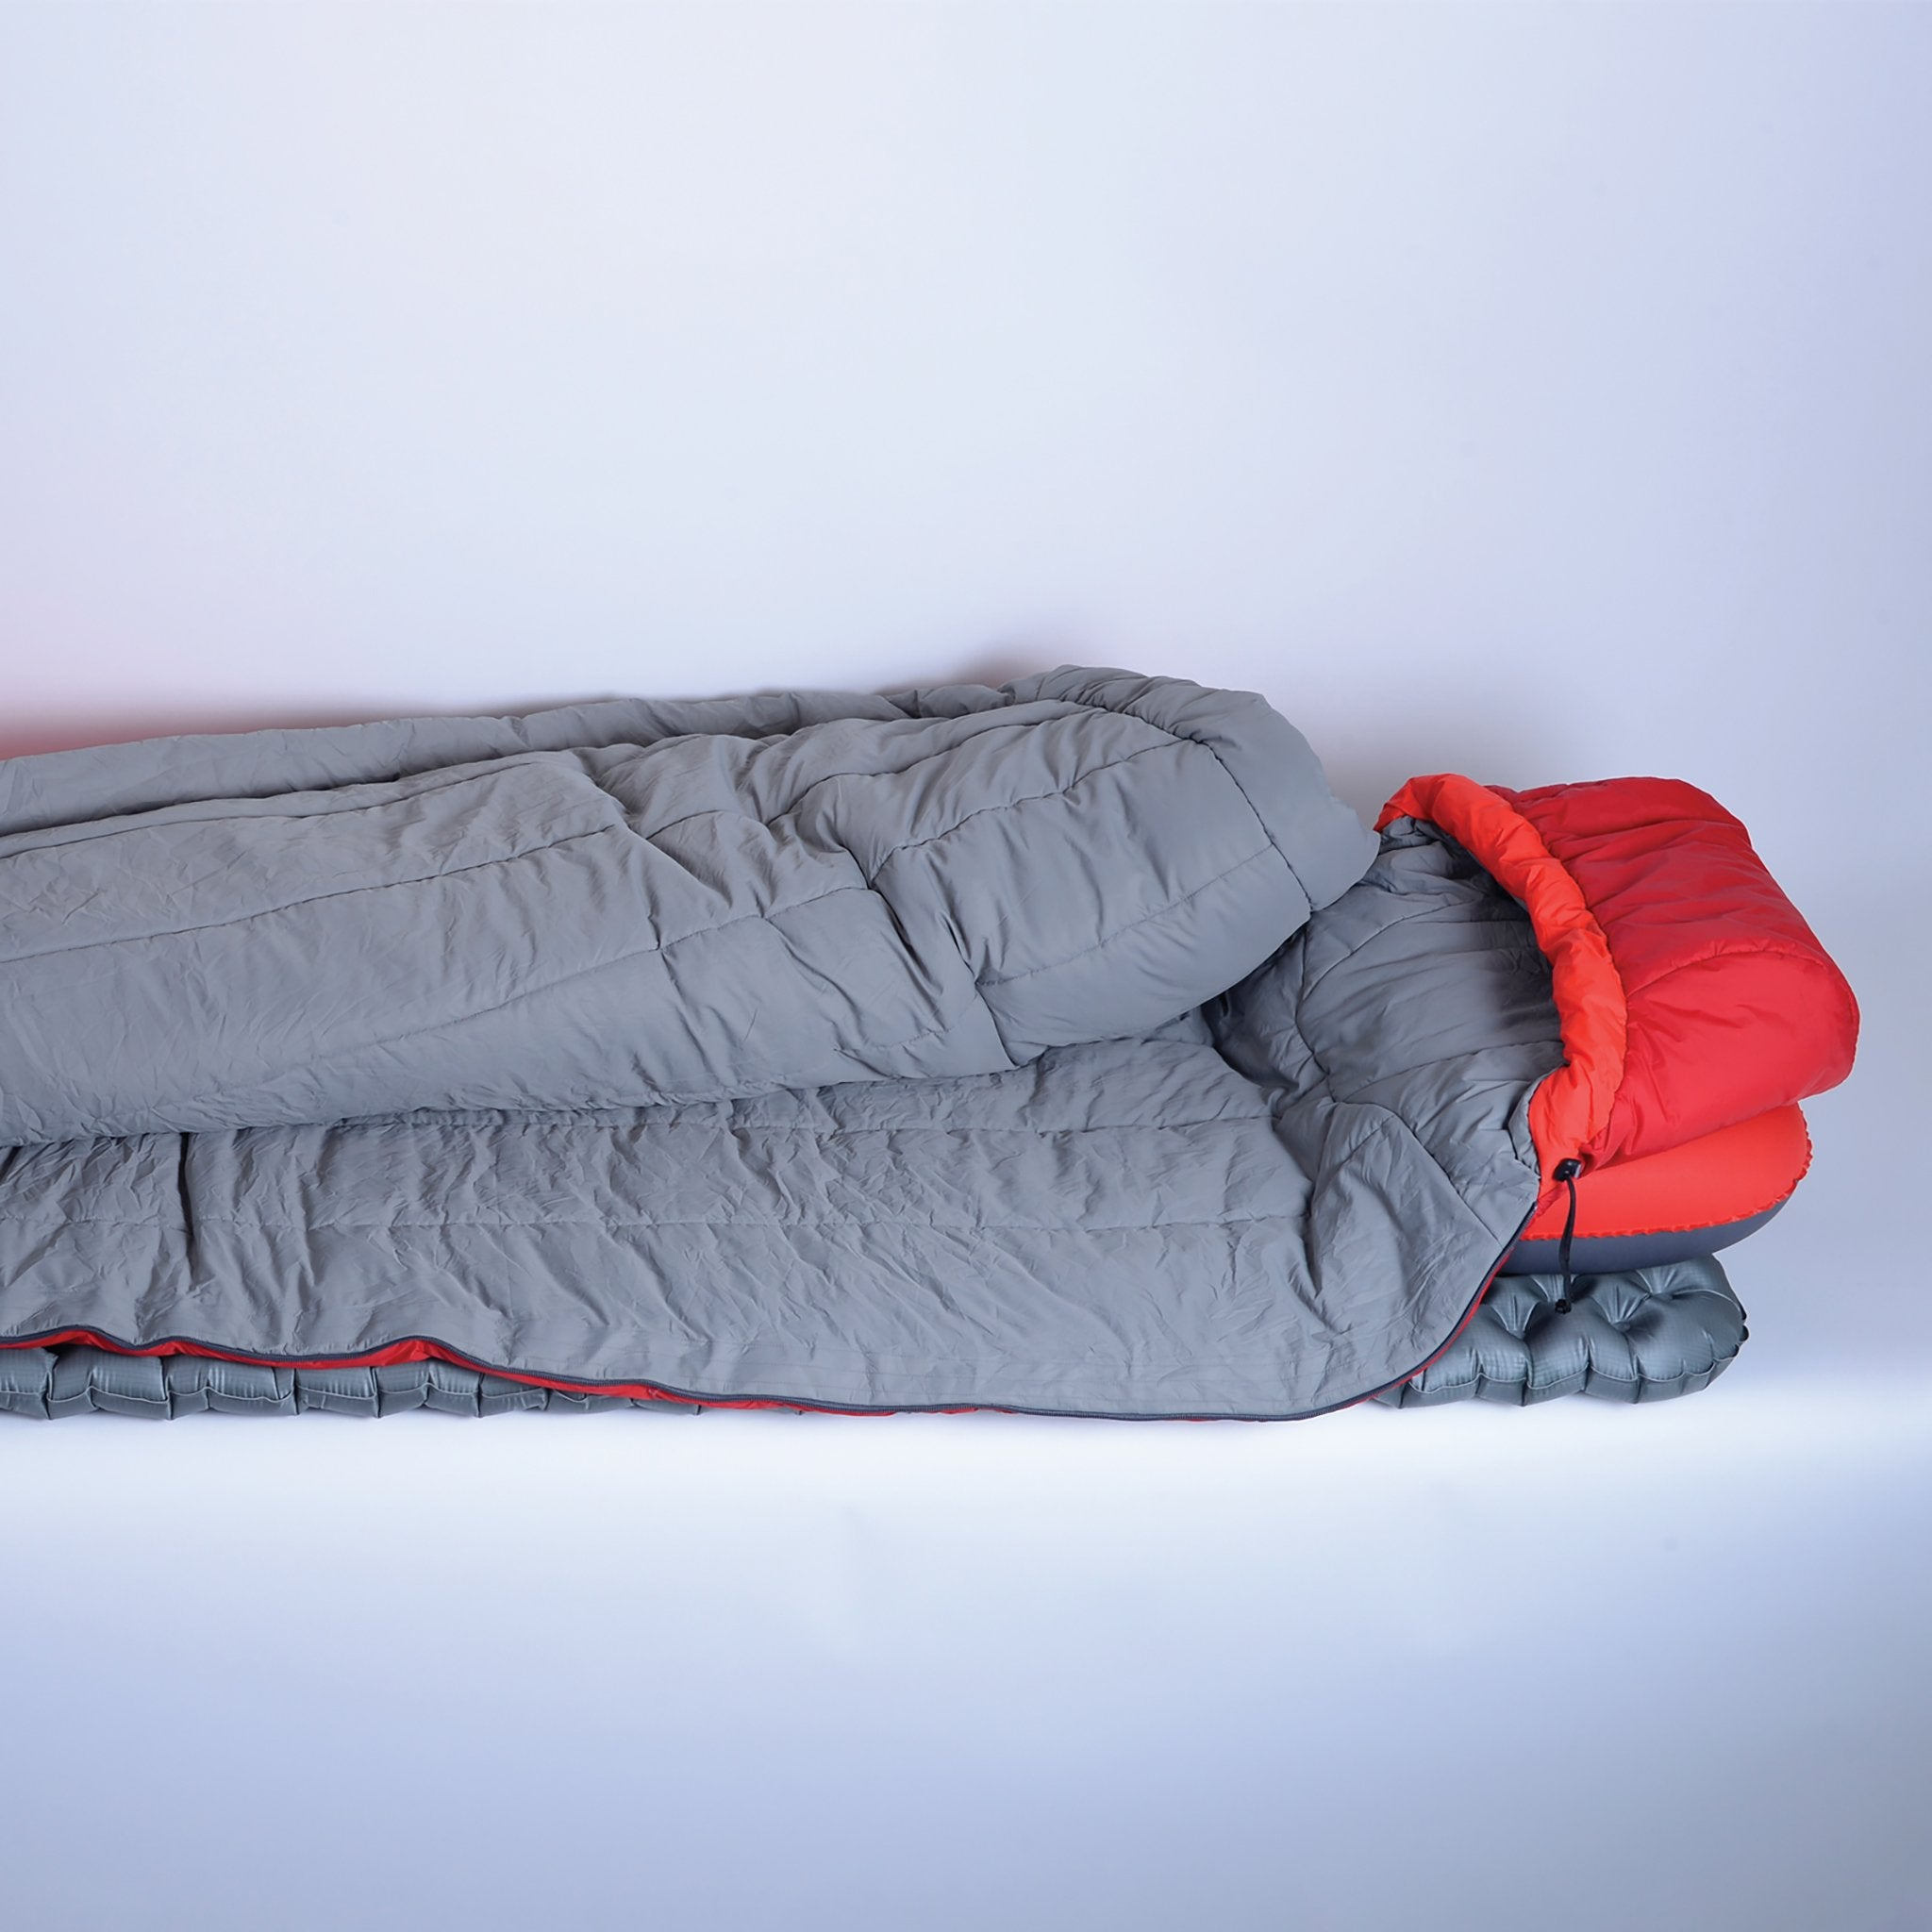 Basecamp BC Large Wide Down Camping Sleeping Bag _ down camping blanket